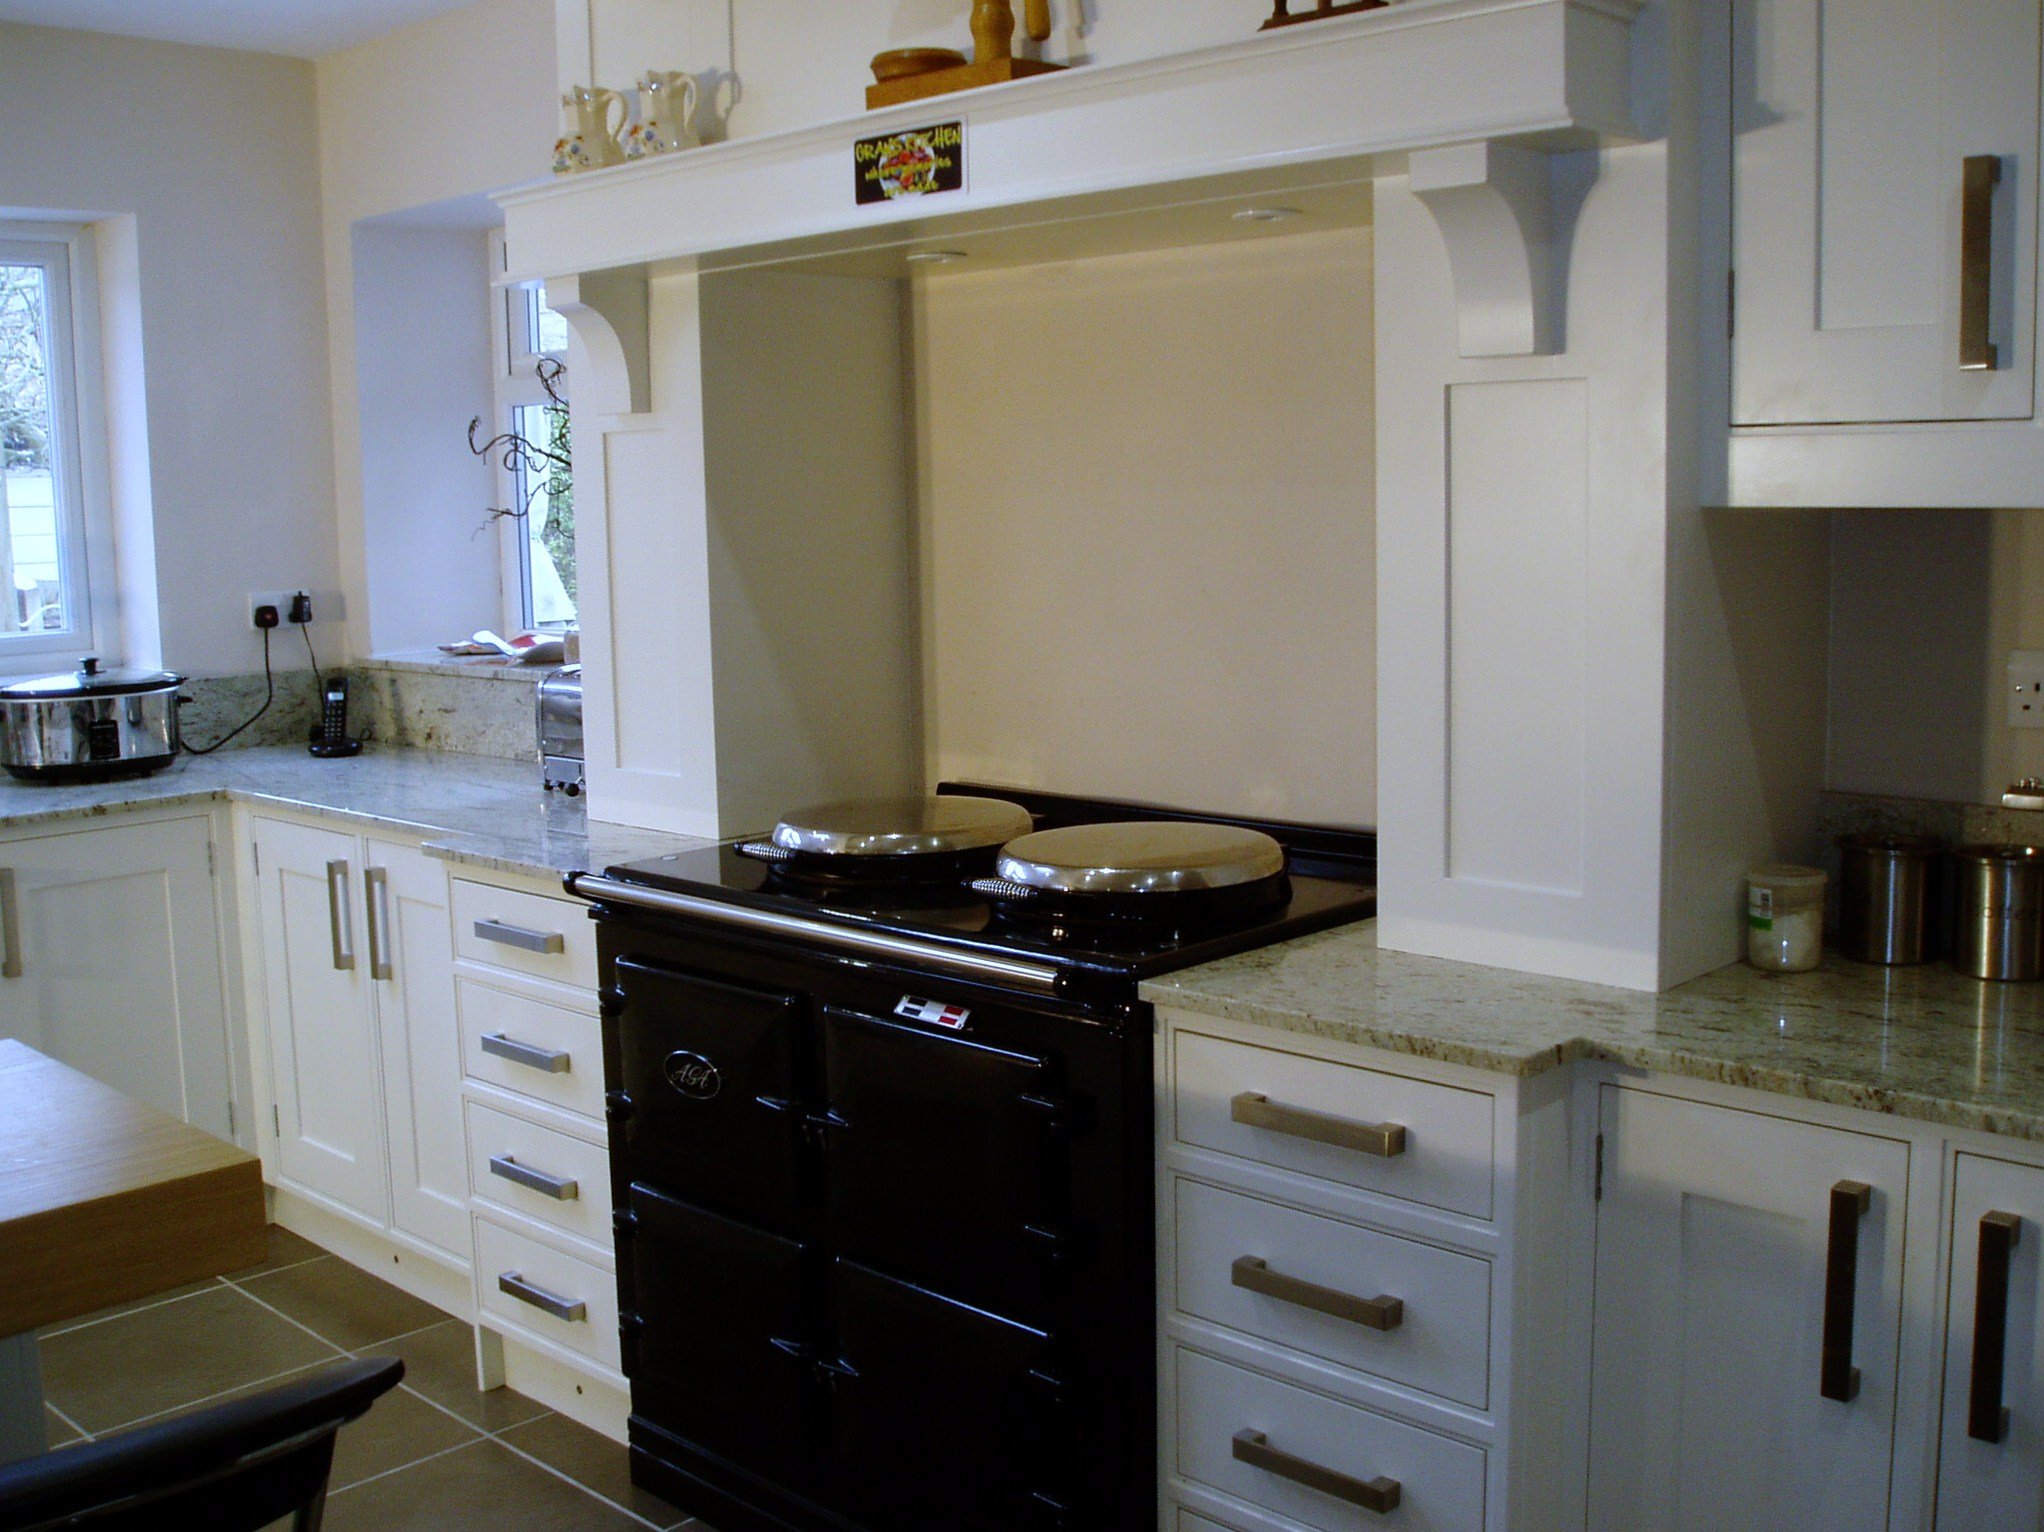 paint for kitchen cabinets uk new insulation shaker painted blisworth northants 001 24274